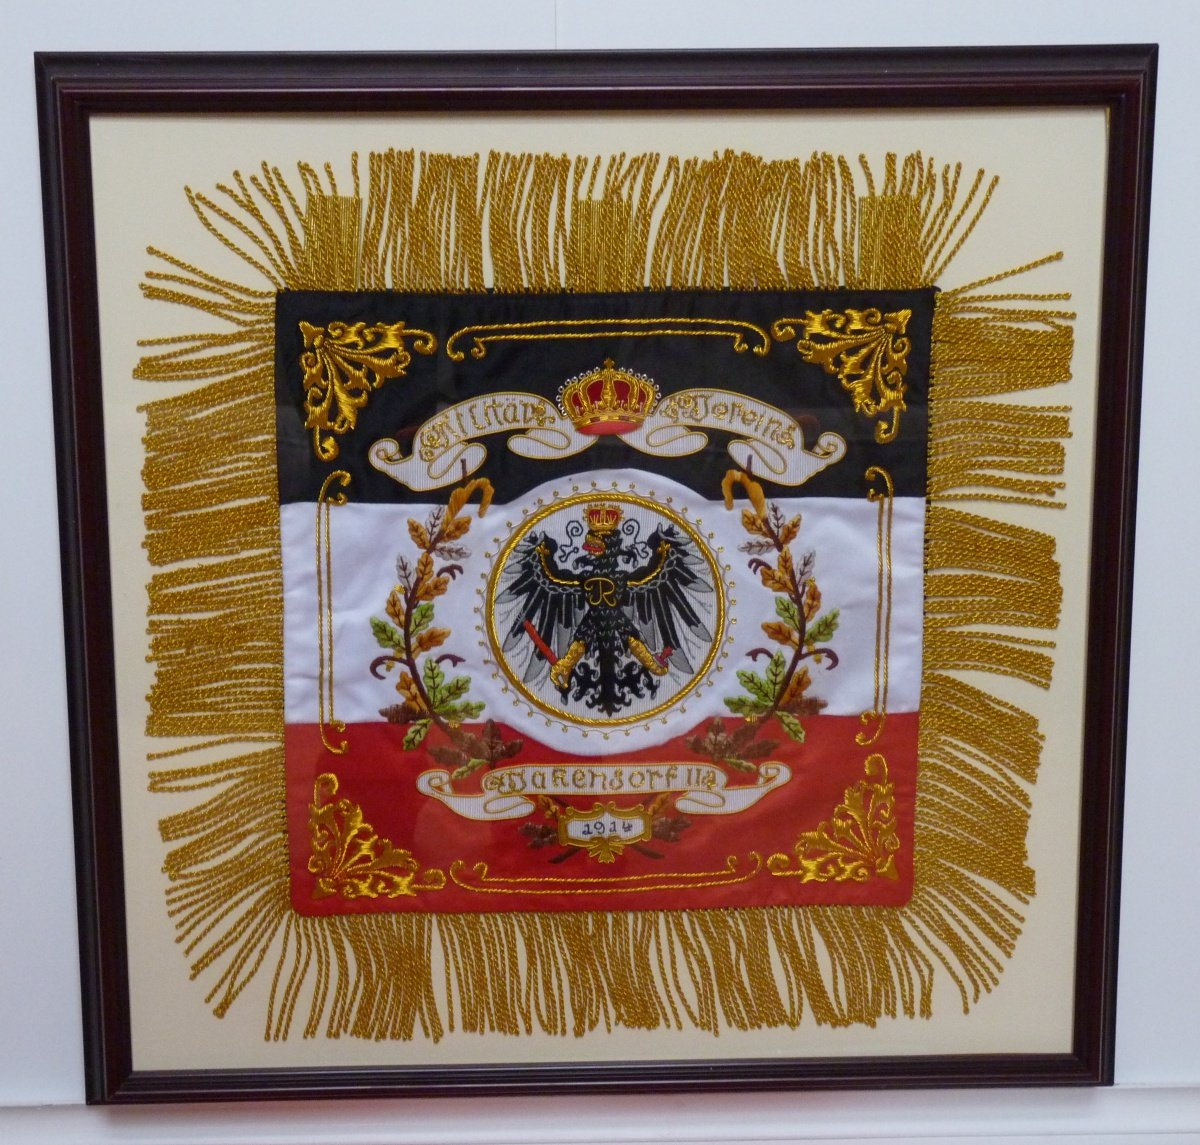 German state coat of arms with fringe - recent forgery